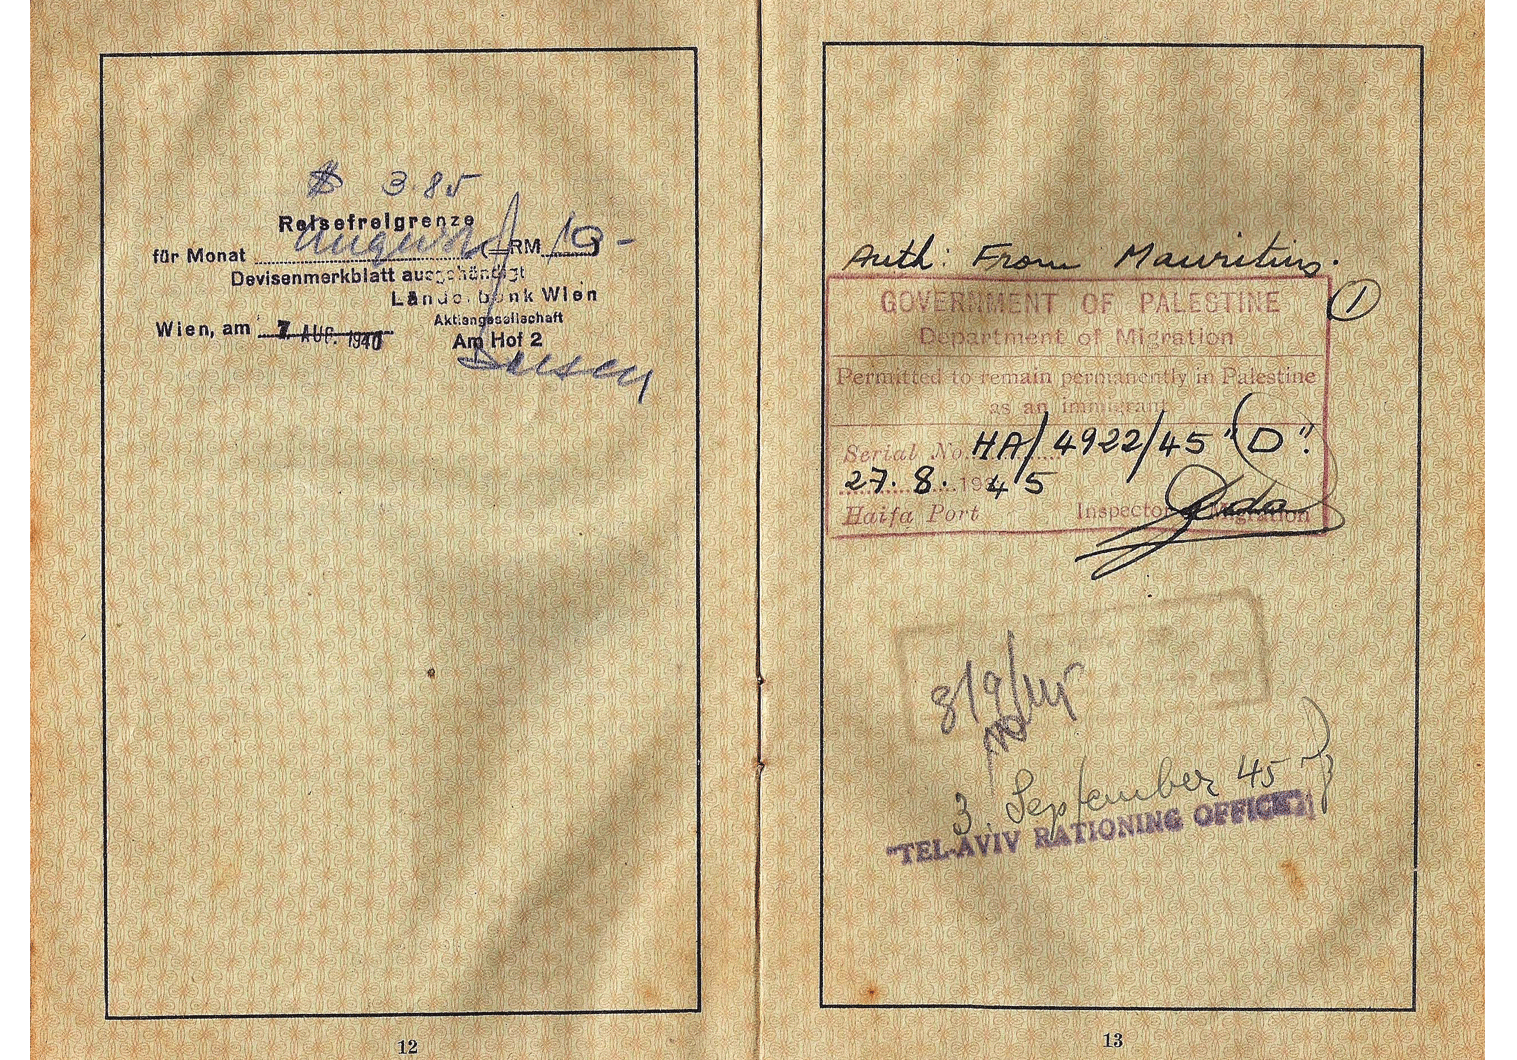 Mauritius Internment camp passport.